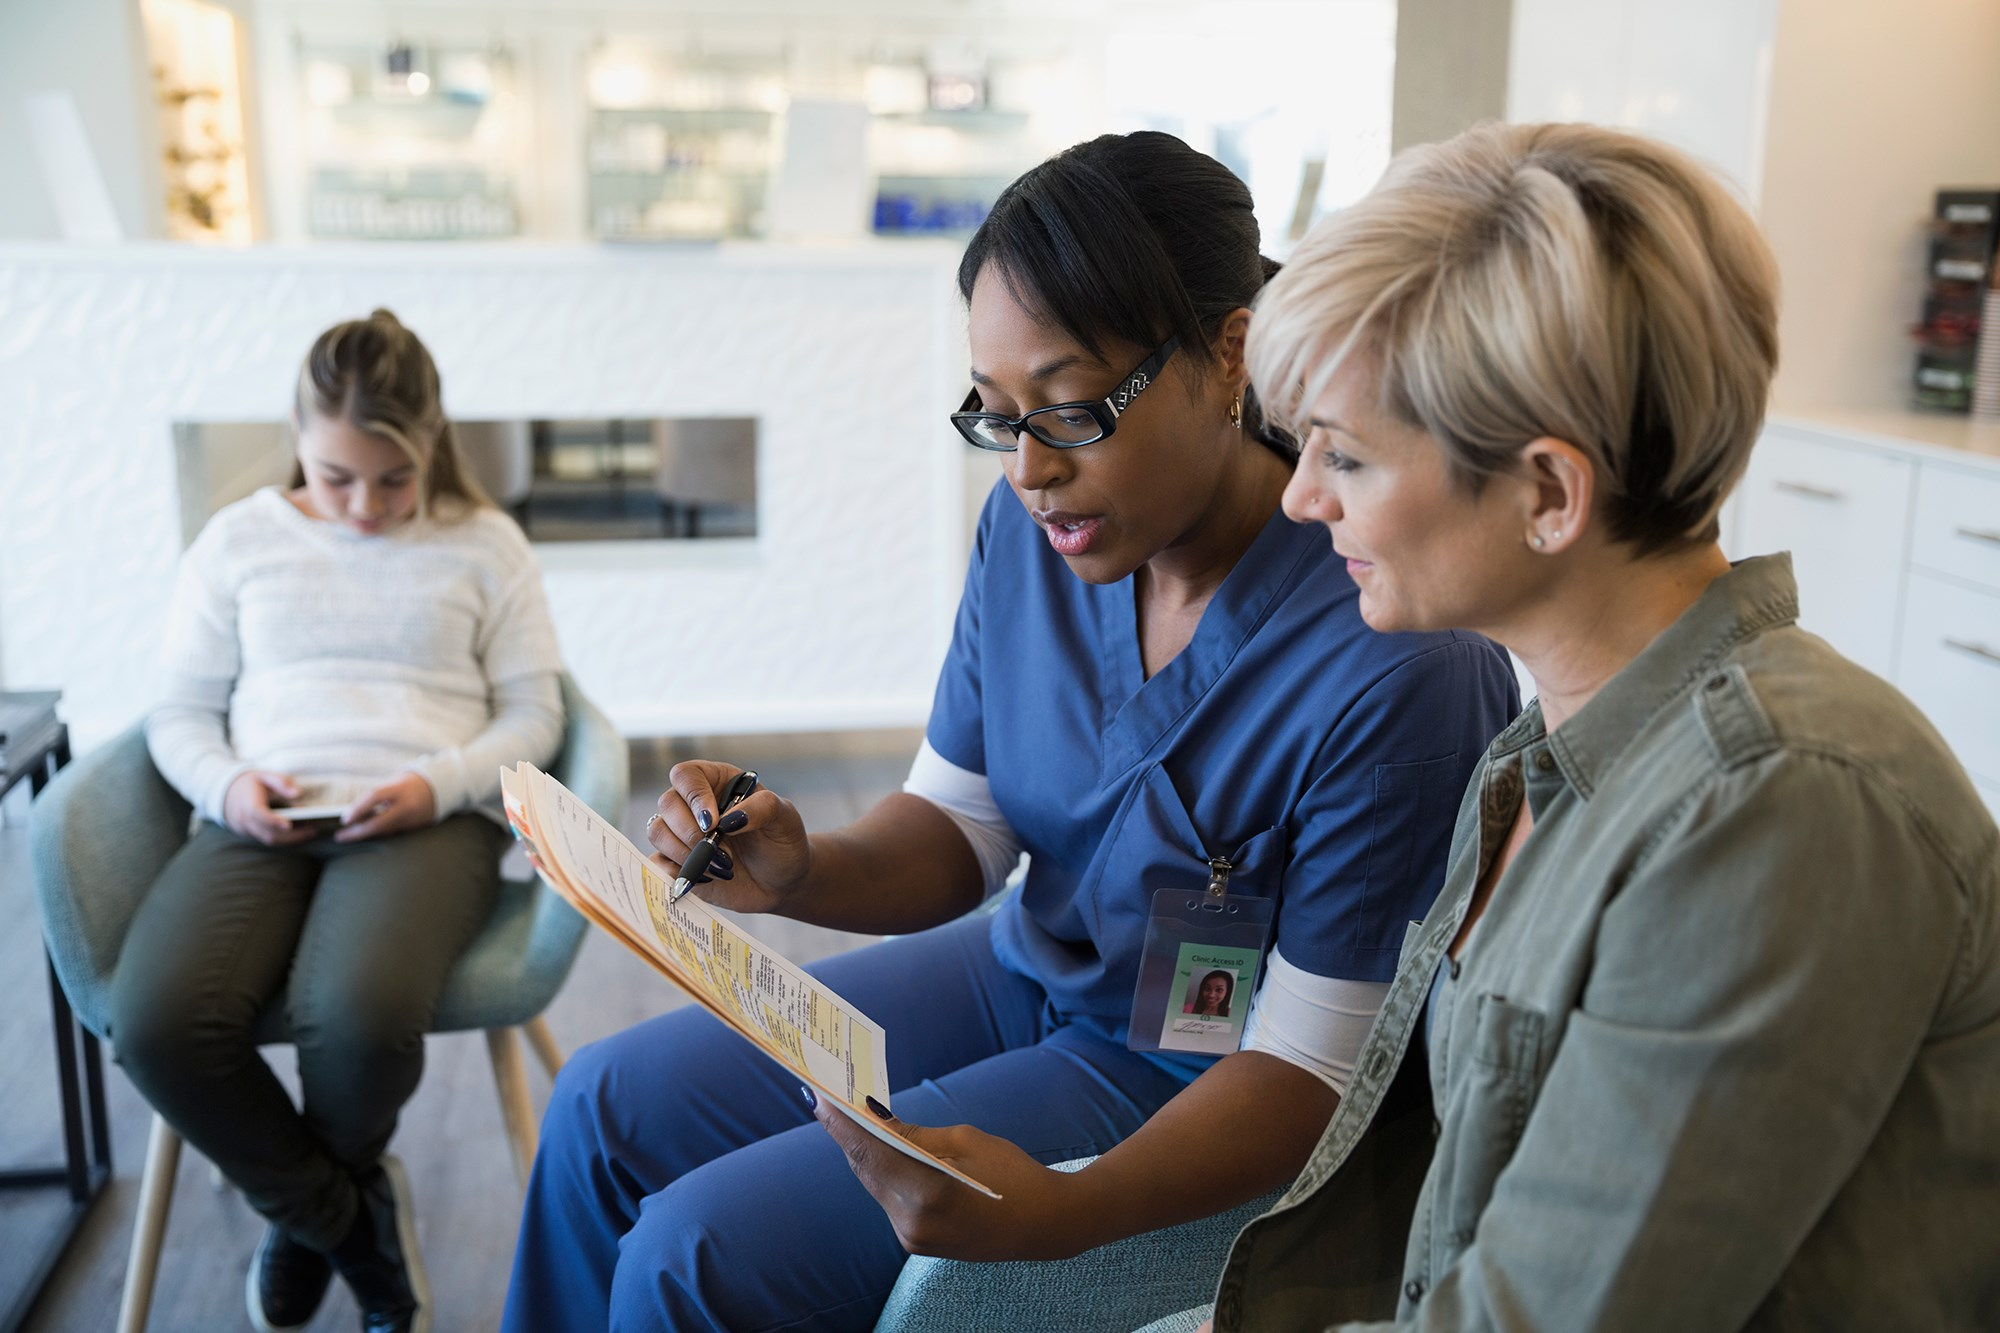 Patients assigned to nurse-led care received a consultation prior to chemotherapy and follow-ups during chemotherapy.